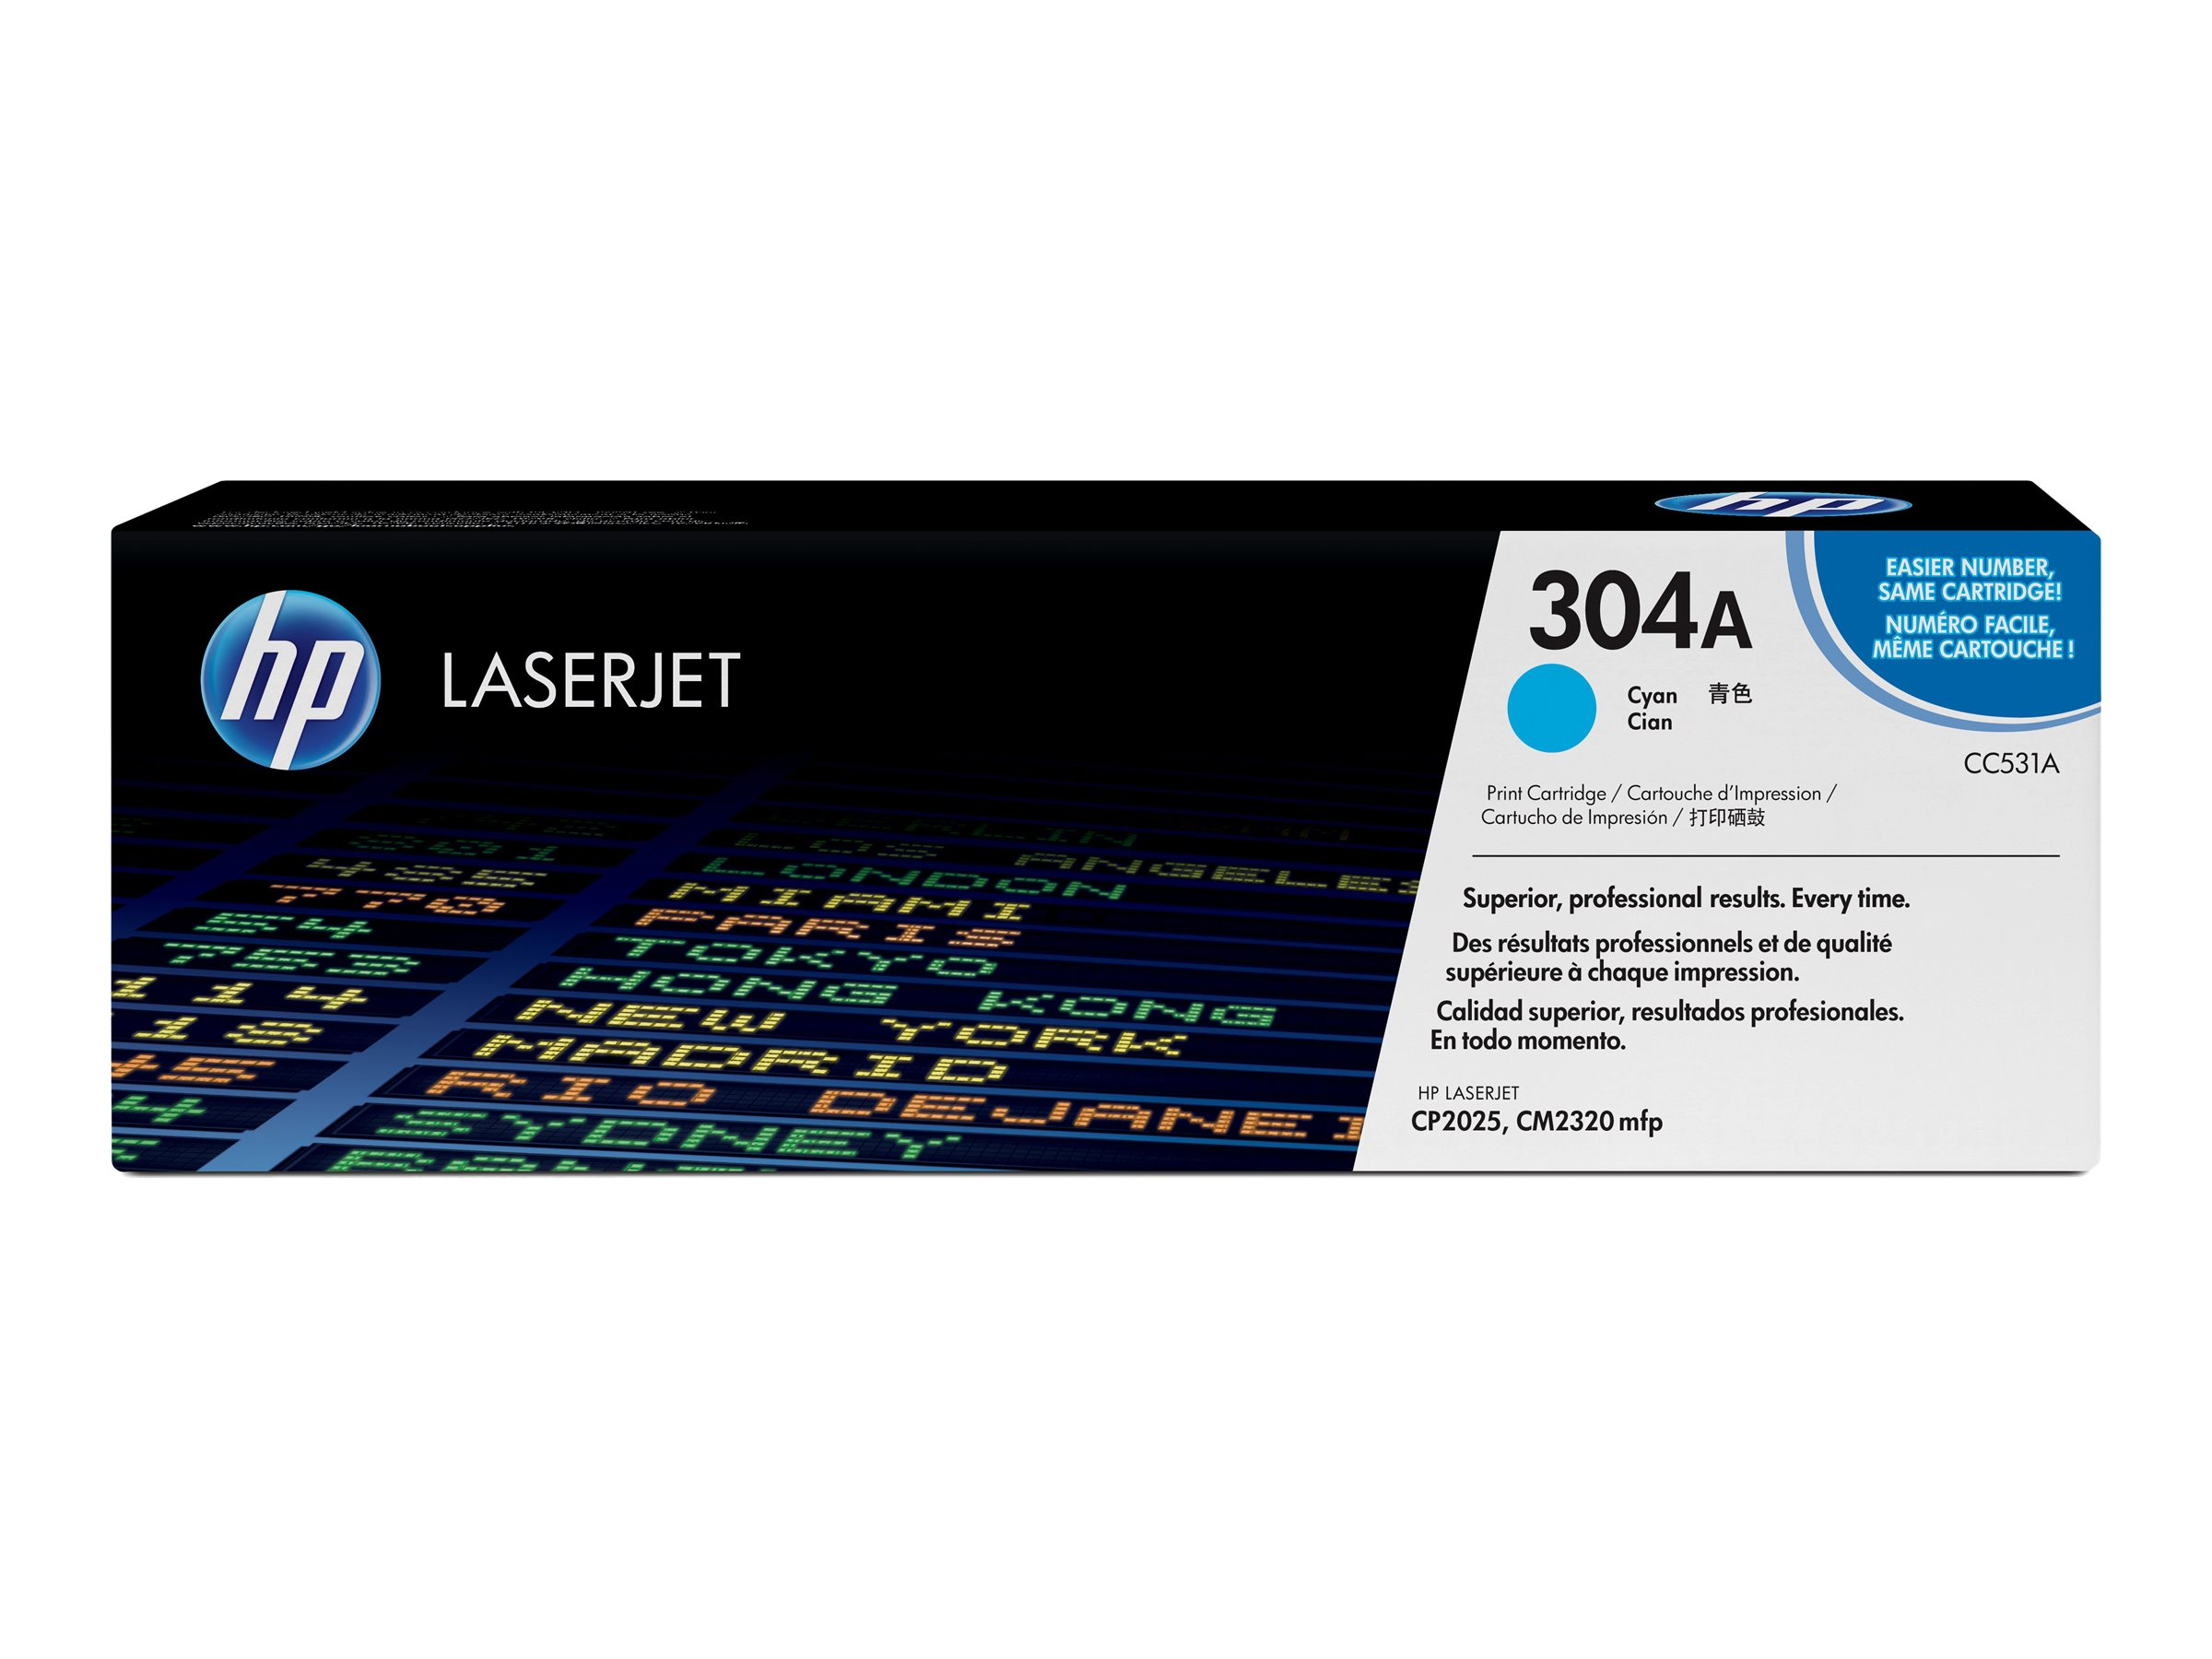 HP 304A - cyan - original - LaserJet - toner cartridge (CC531A)